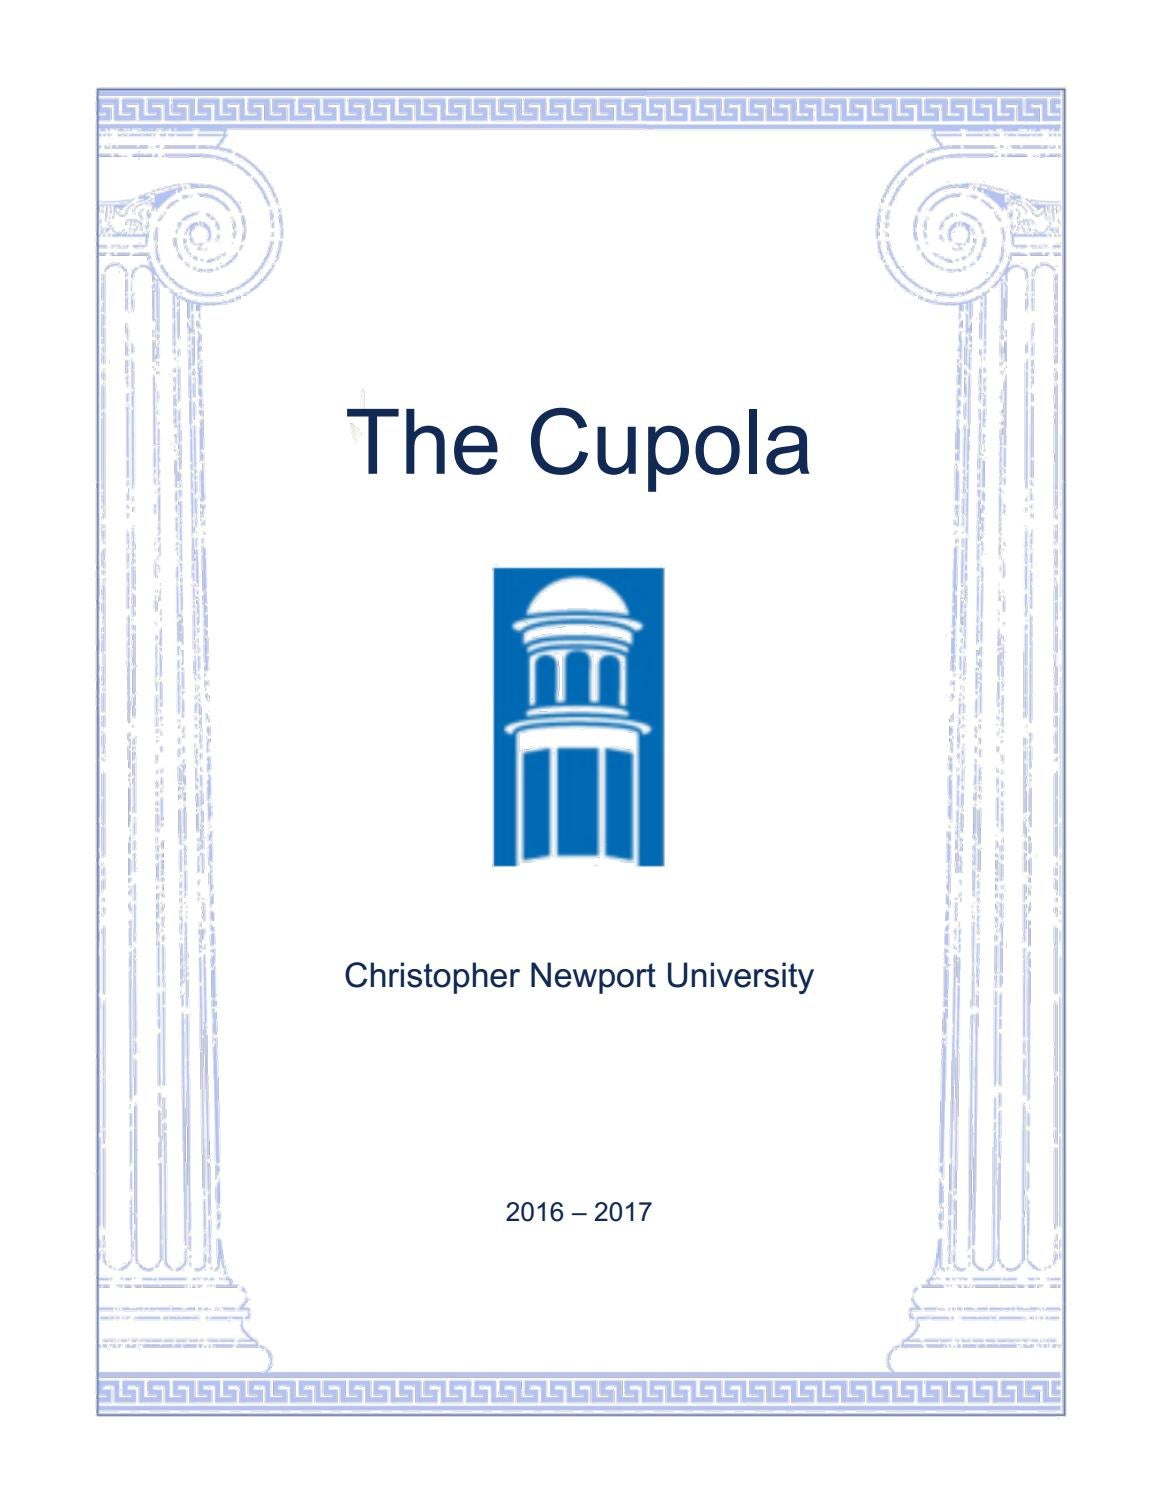 Cash Pool Führer The Cupola 2016 17 By Christopher Newport University Issuu